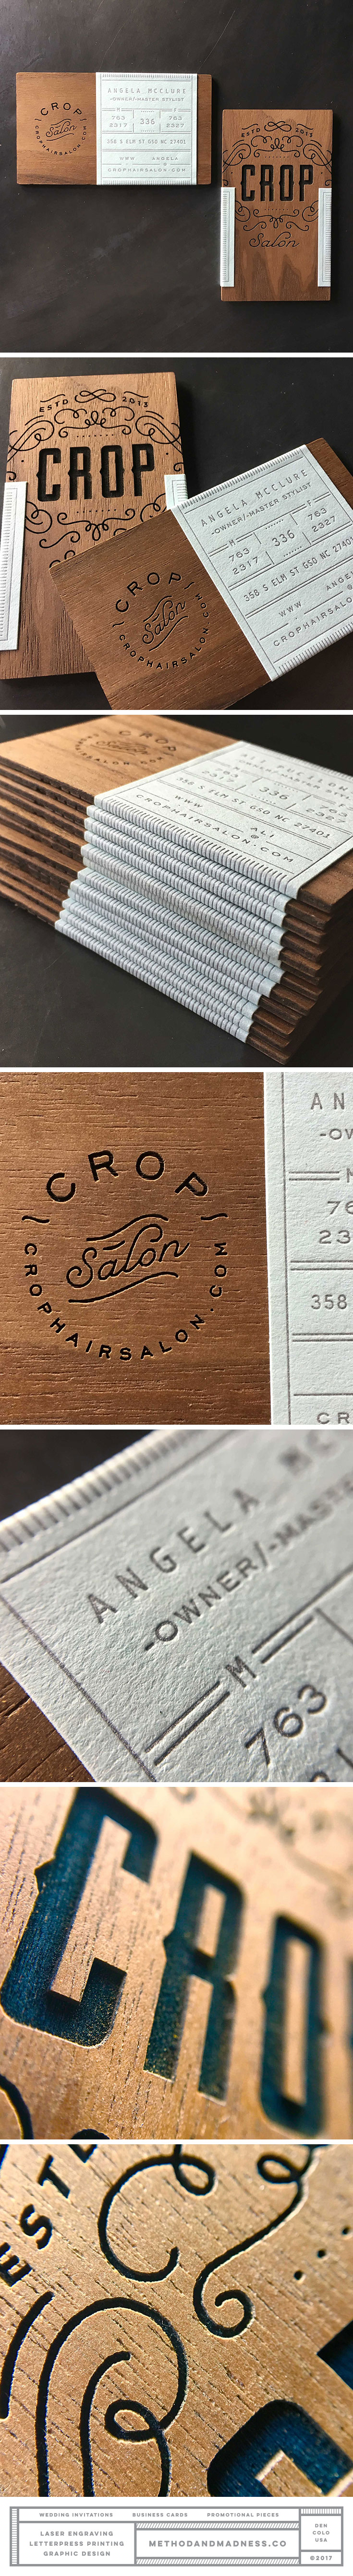 Laser engraved wood business cards with letterpress sticker label